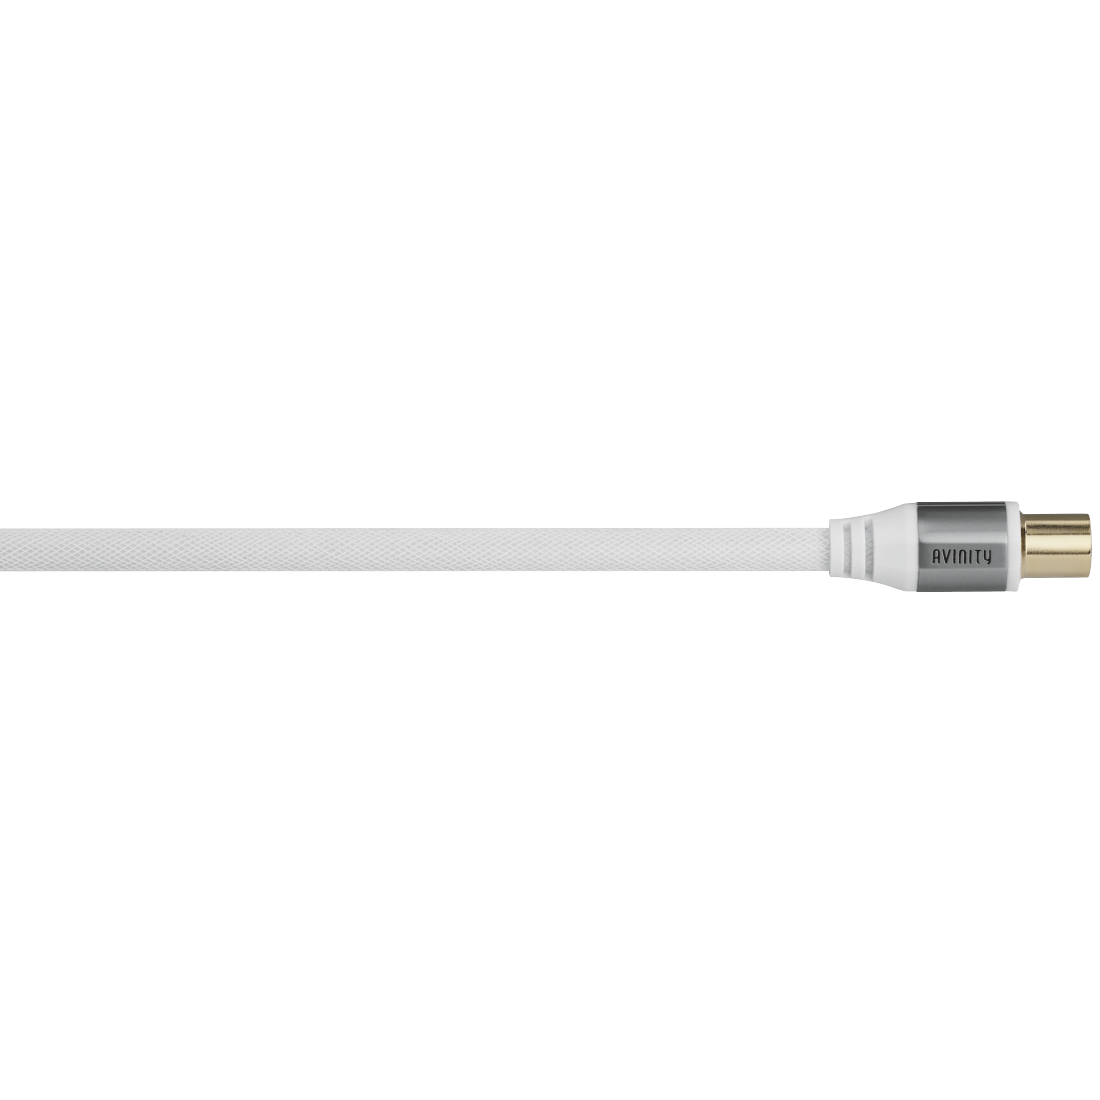 abx High-Res Image - Avinity, Antenna Cable, coax plug - coax socket, fabric, gold-plated, 110 dB, 2.0 m